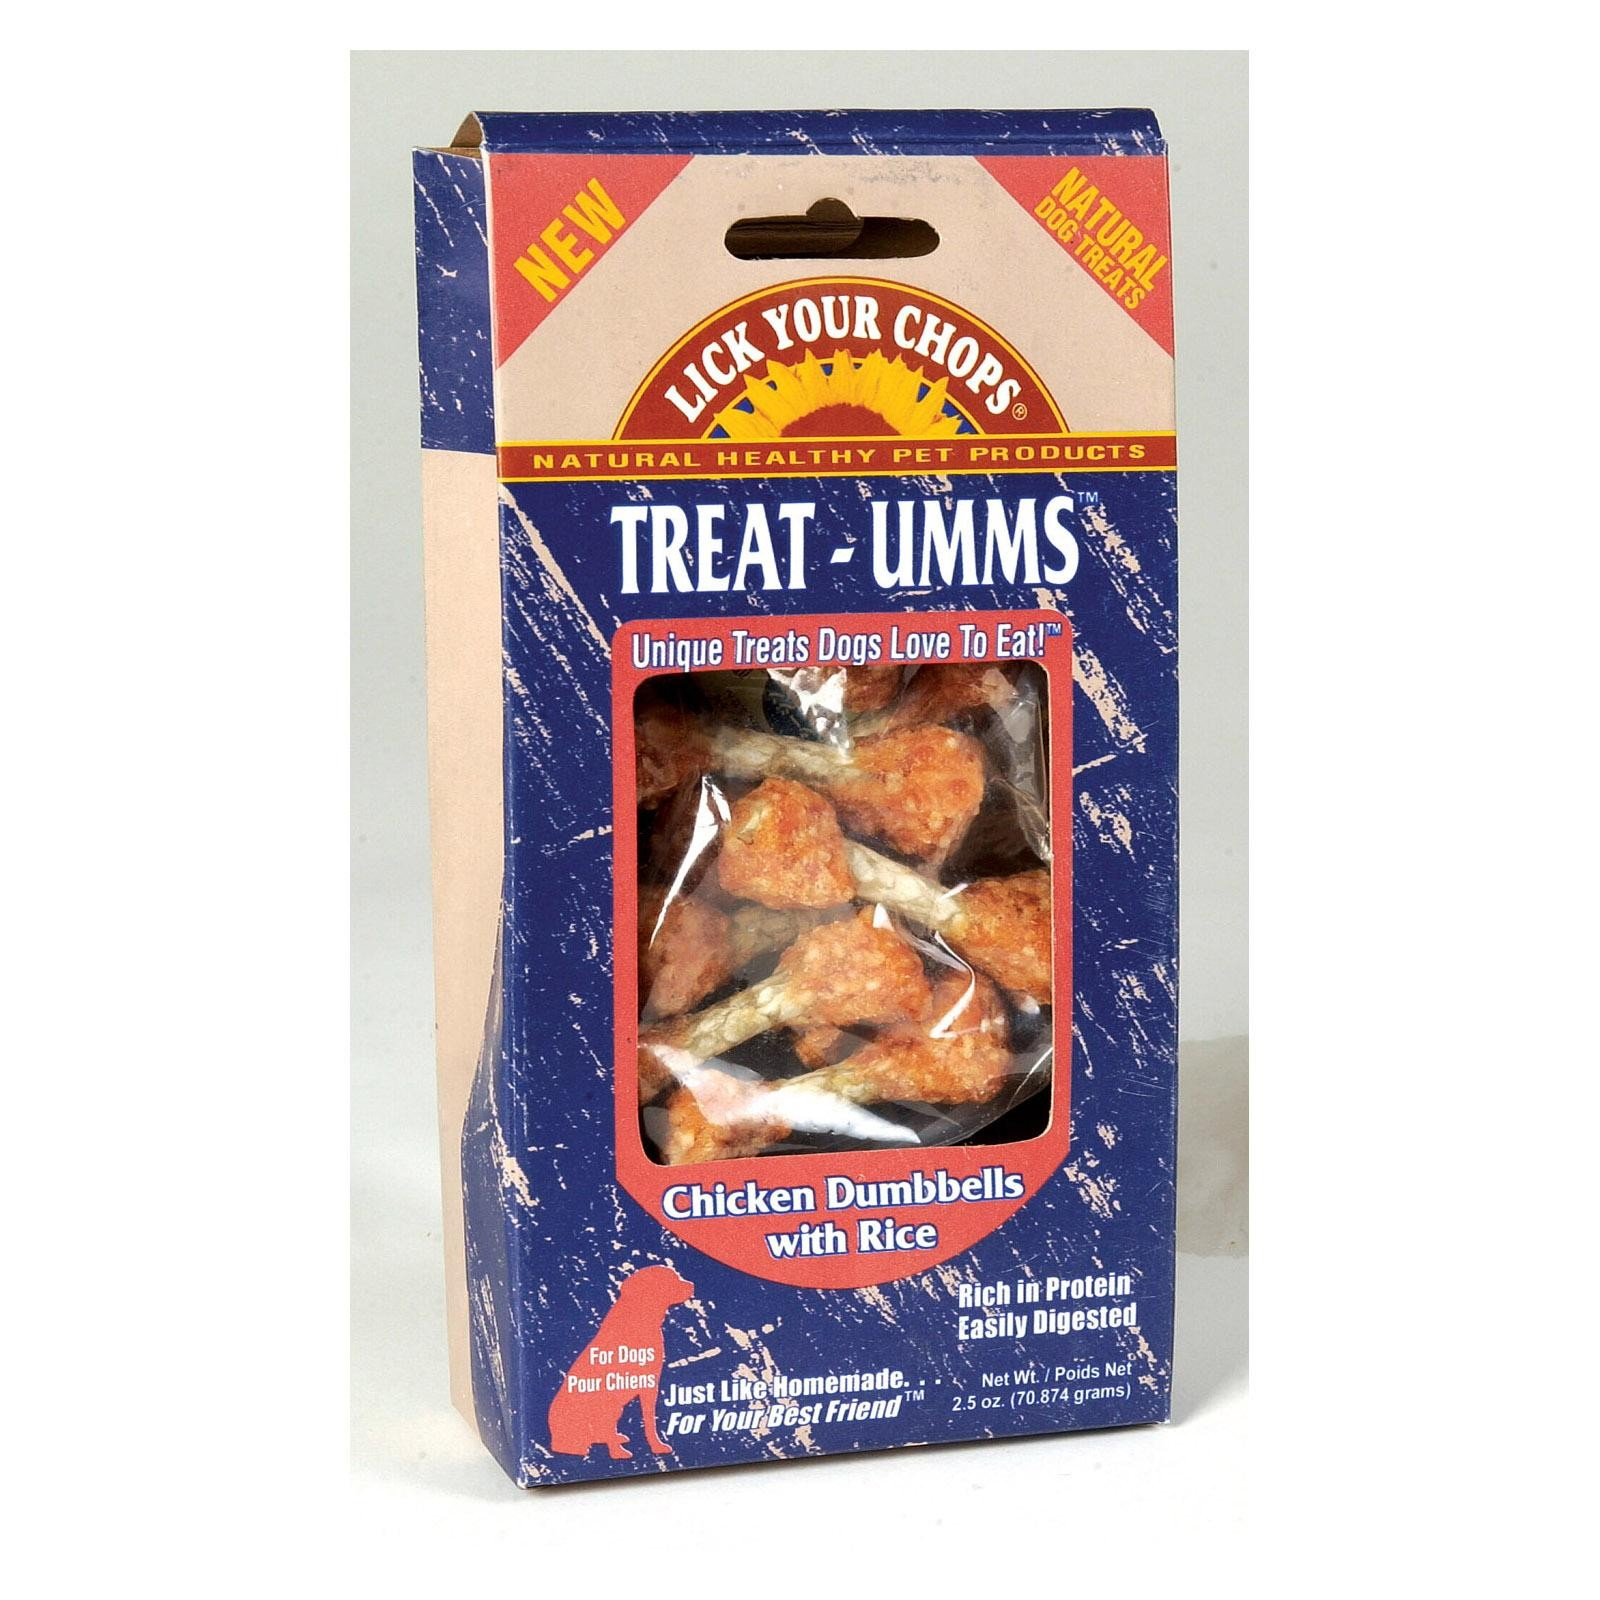 Lick Your Chops Treat - Umms Dog Treats - Chicken Dumbell - Pack of 6 - 2.5 Oz.